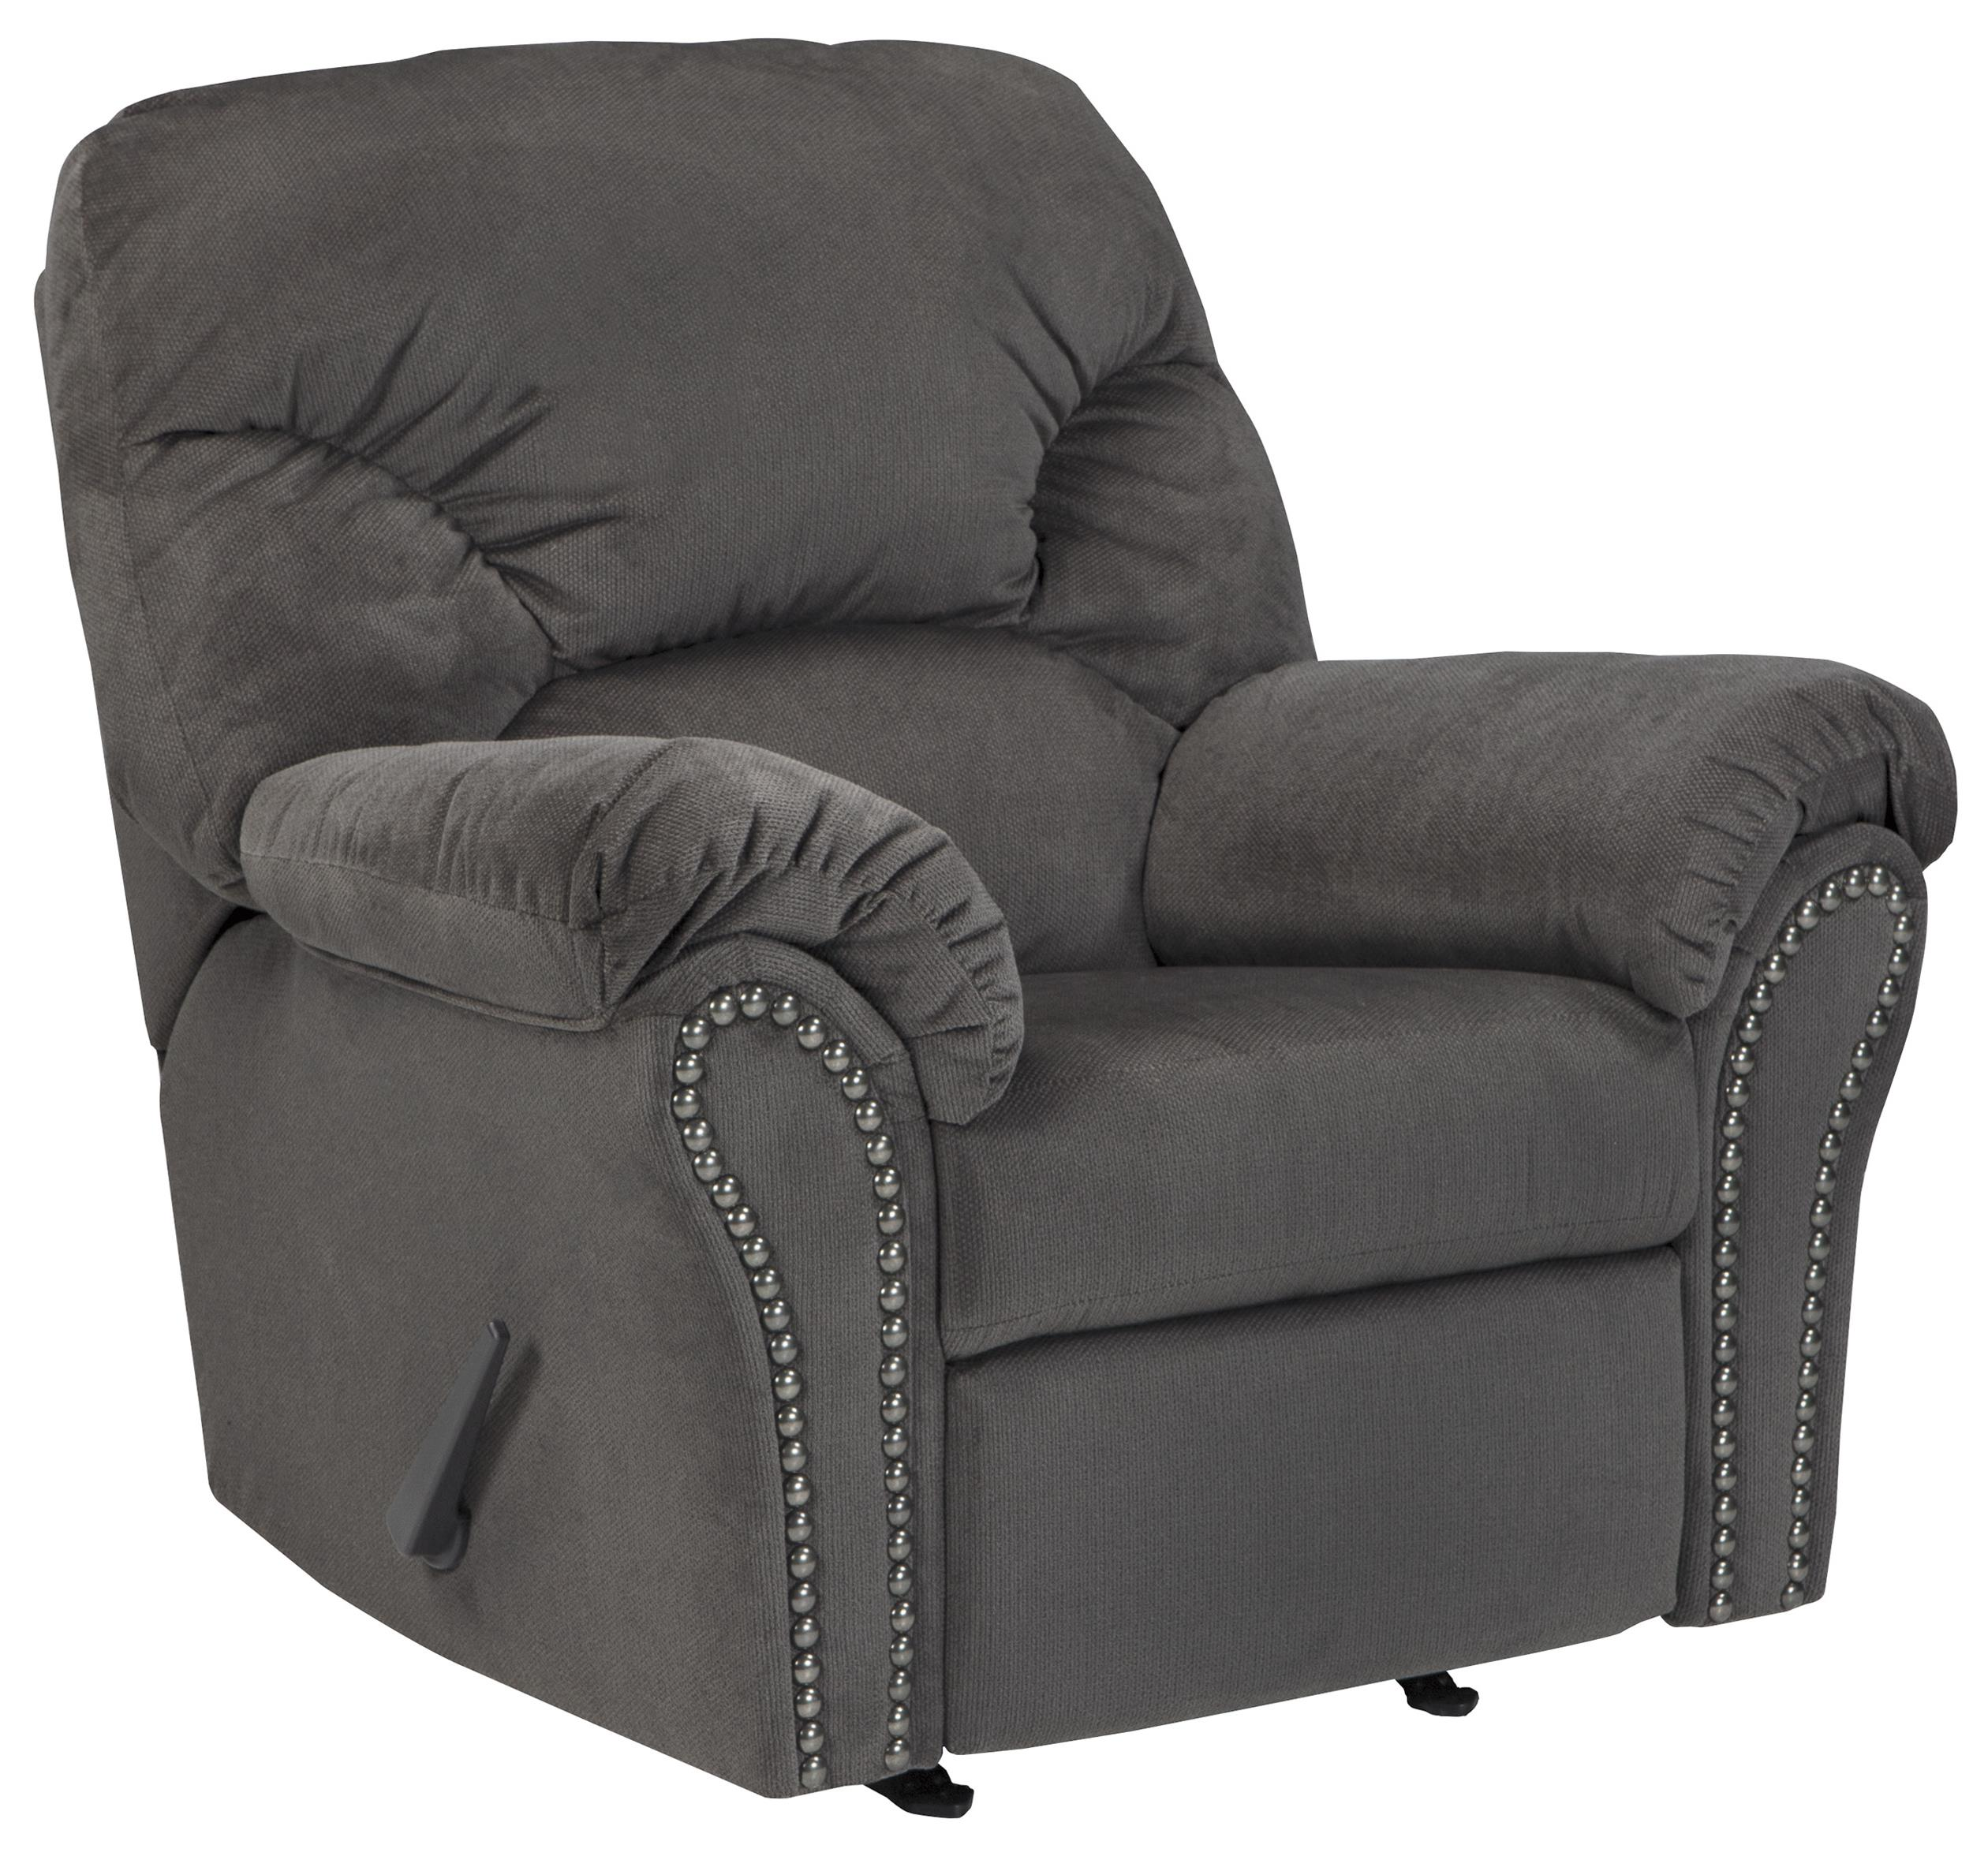 Signature Design by Ashley Kinlock Rocker Recliner - Item Number: 3340025